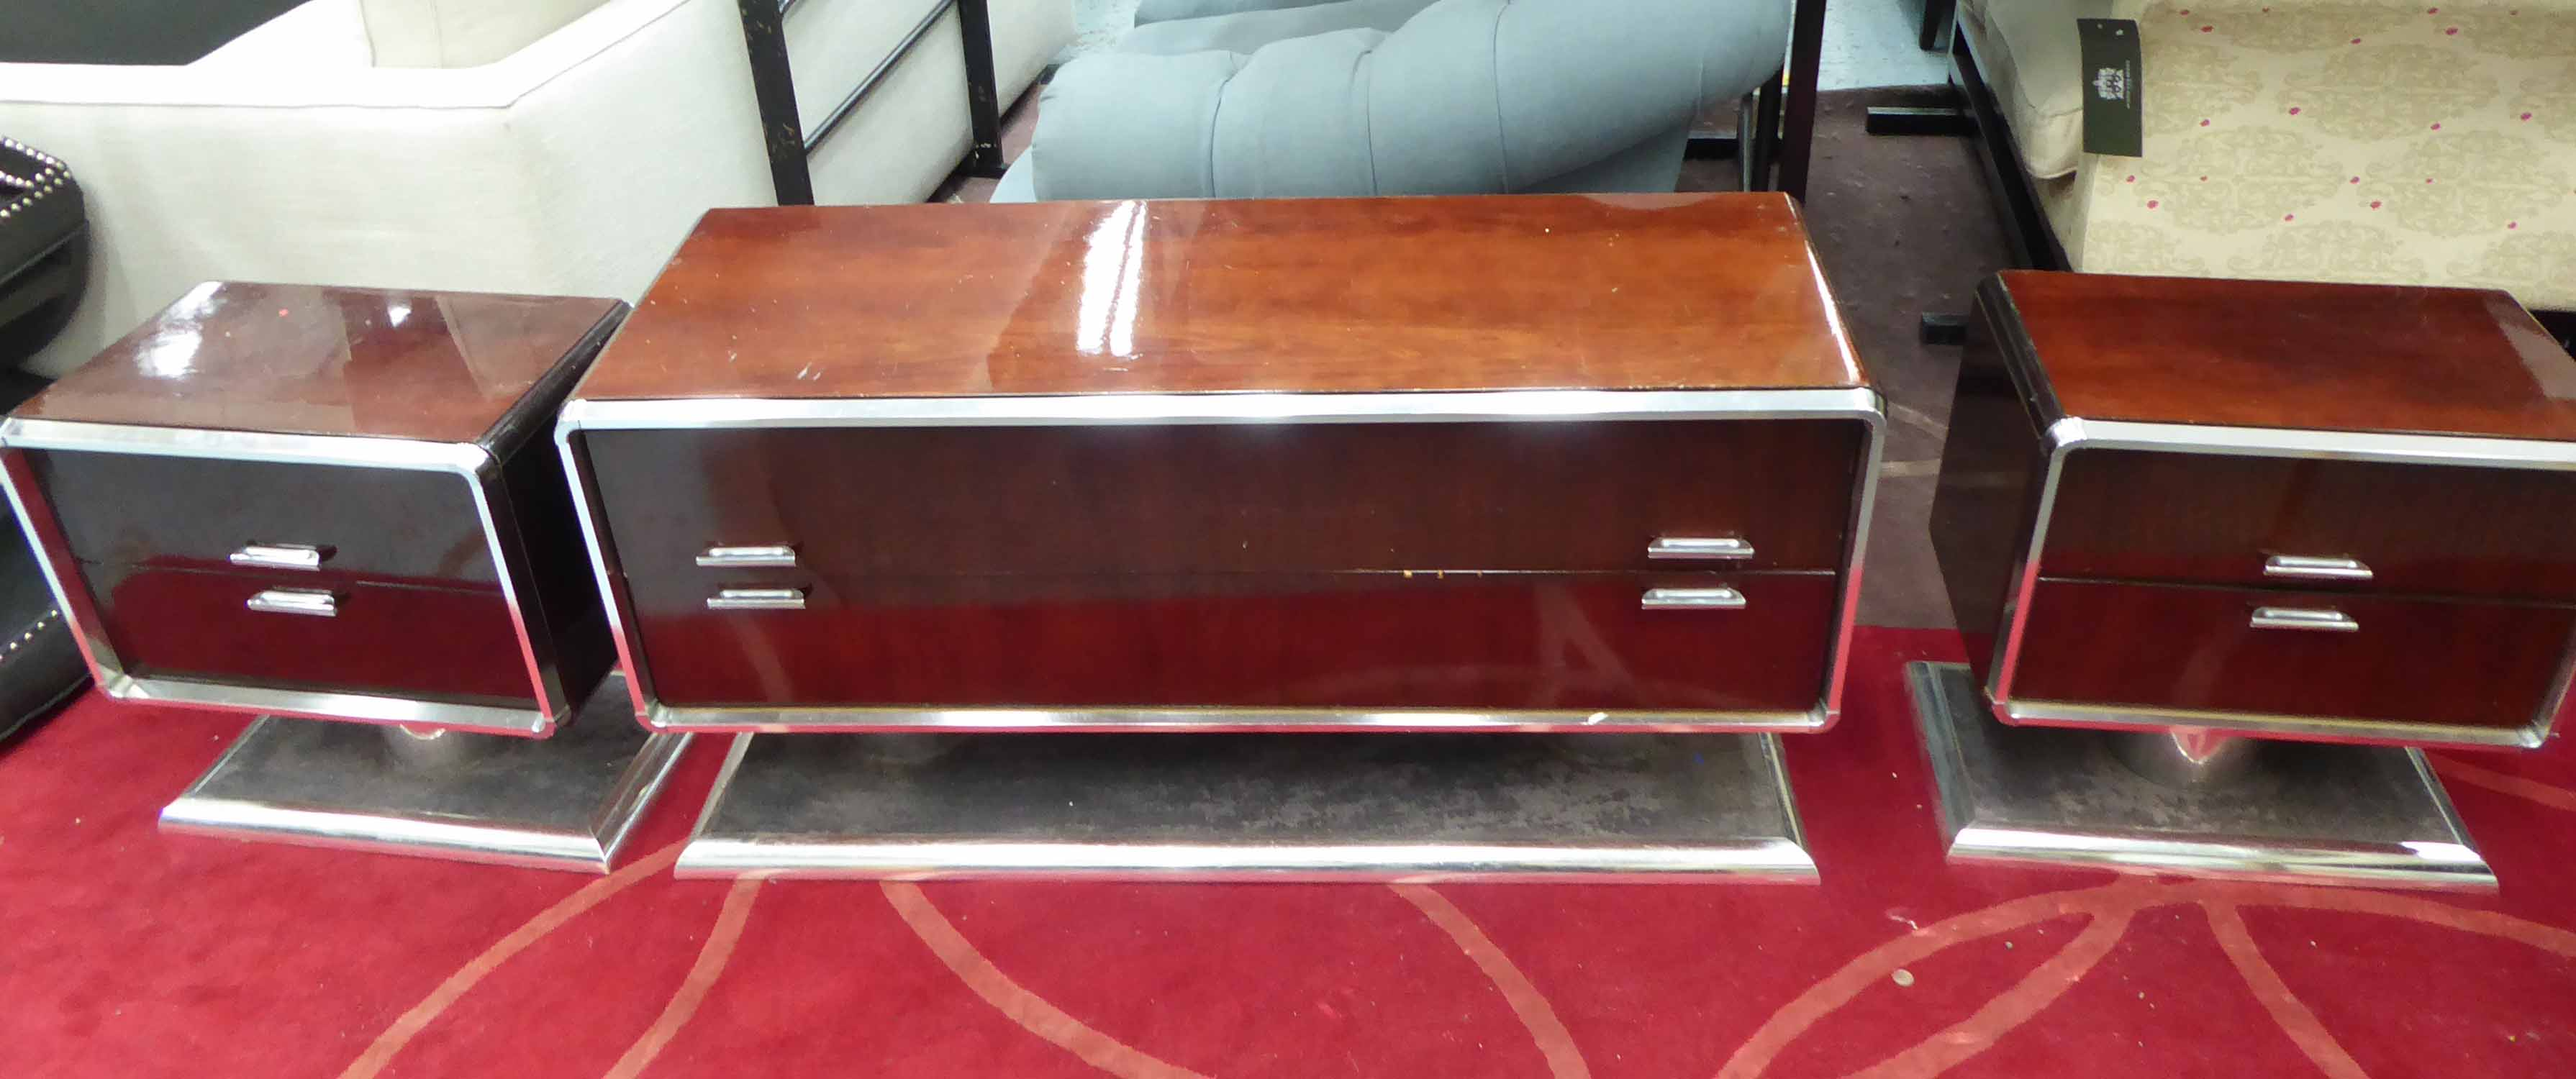 Lot 50 - LOUNGE CABINET SET, vintage 1970's champ-buckets rosewood with carpet detail at base, 124cm largest.